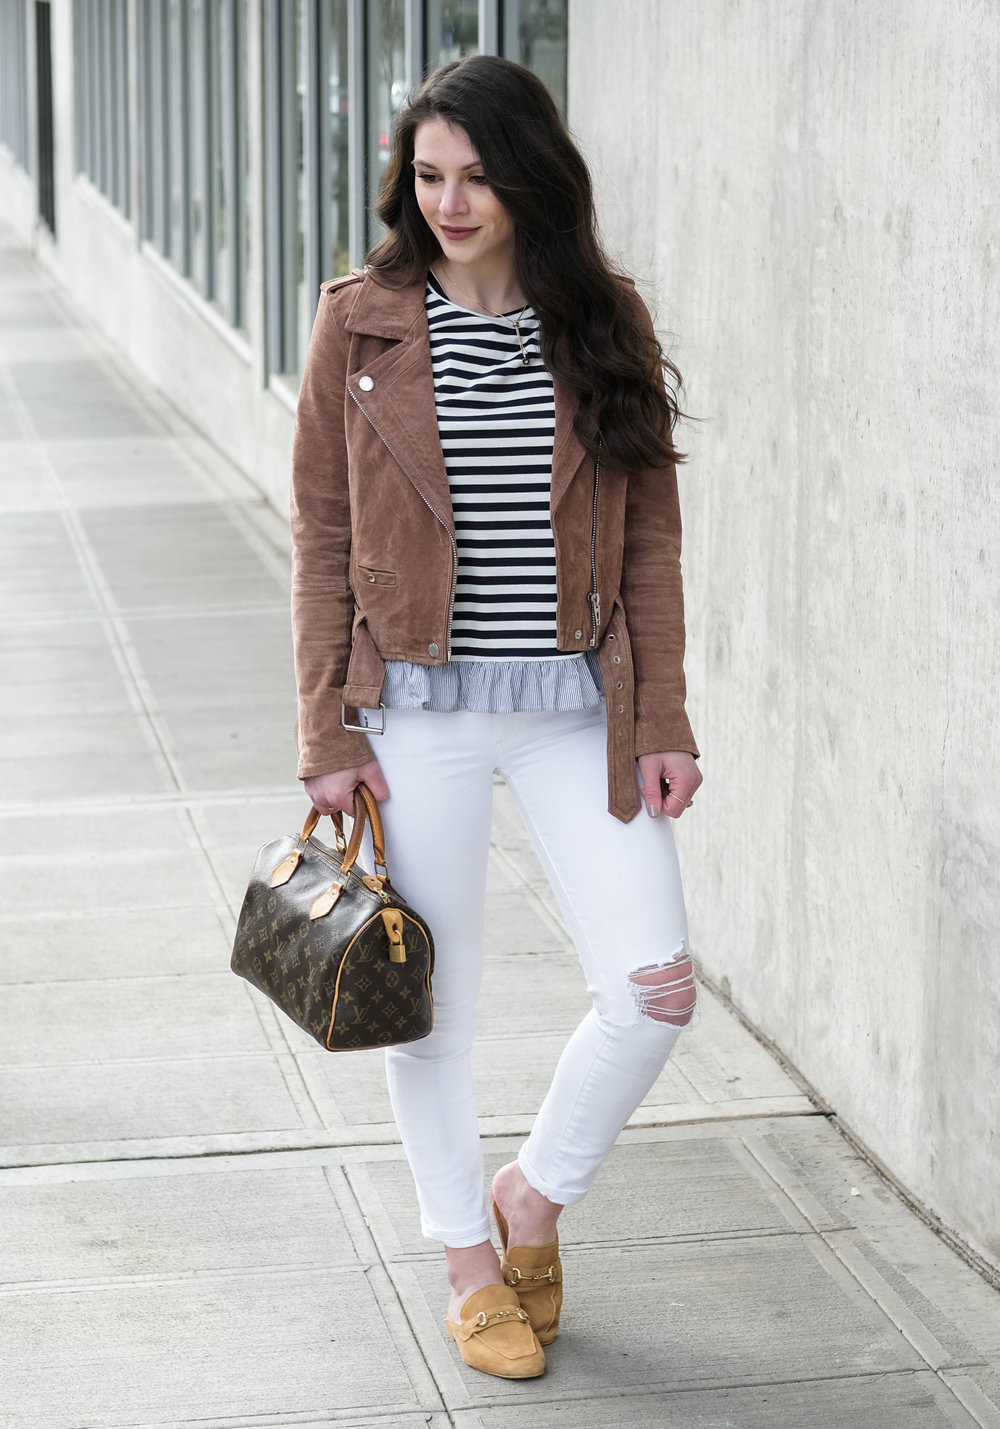 Steve Madden Razzi Mules, cute spring outfits with backless mules, Blank NYC suede moto jacket, cute spring outfits.